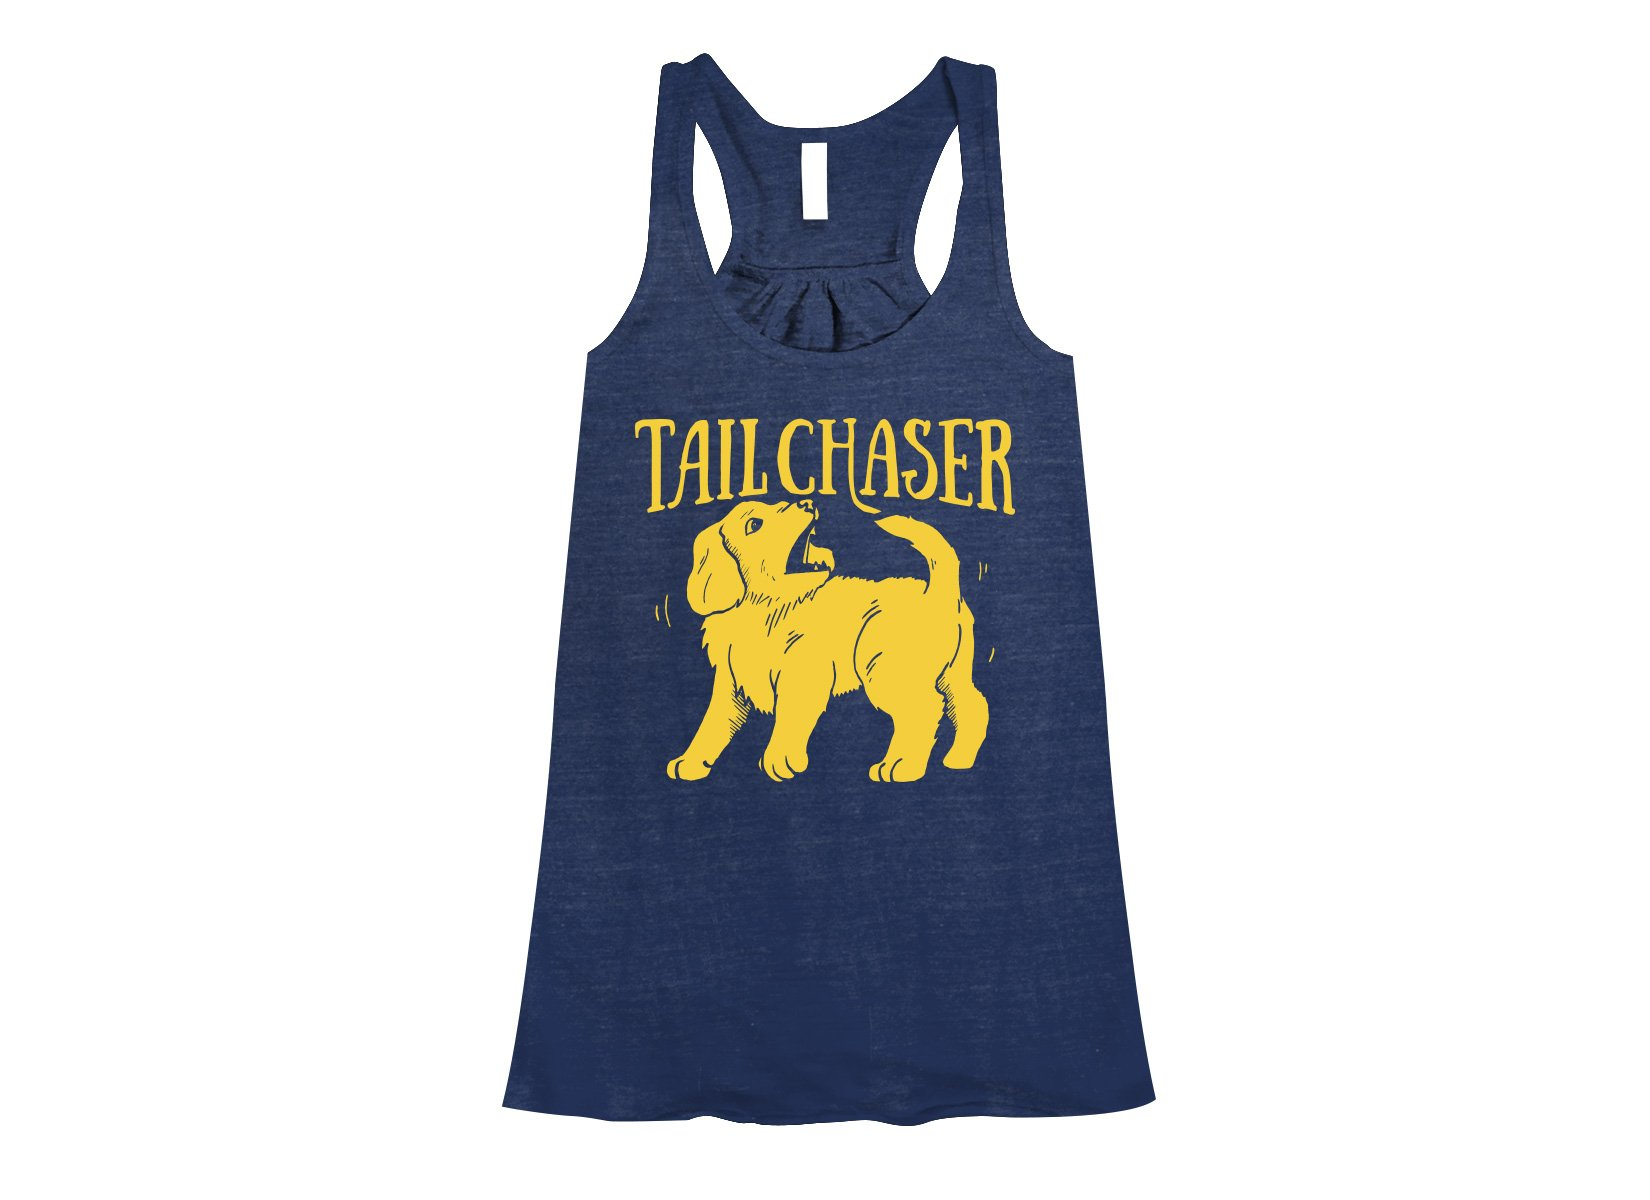 Tail Chaser on Womens Tanks T-Shirt